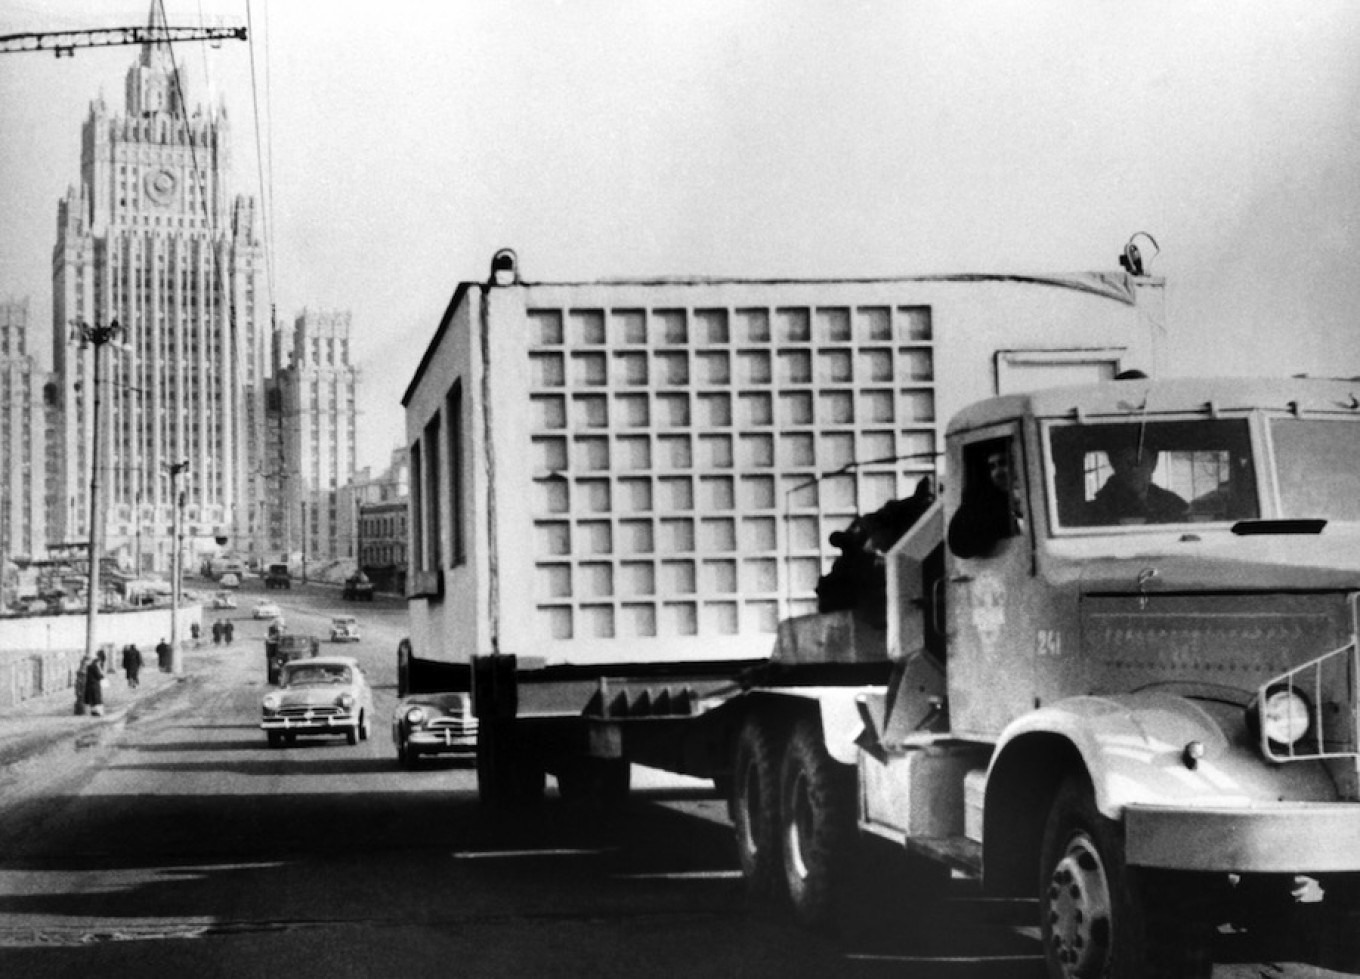 A truck transports parts of a Khrushchevka during a massive housing building boom in 1960, Moscow, Soviet Union.				 				TASS